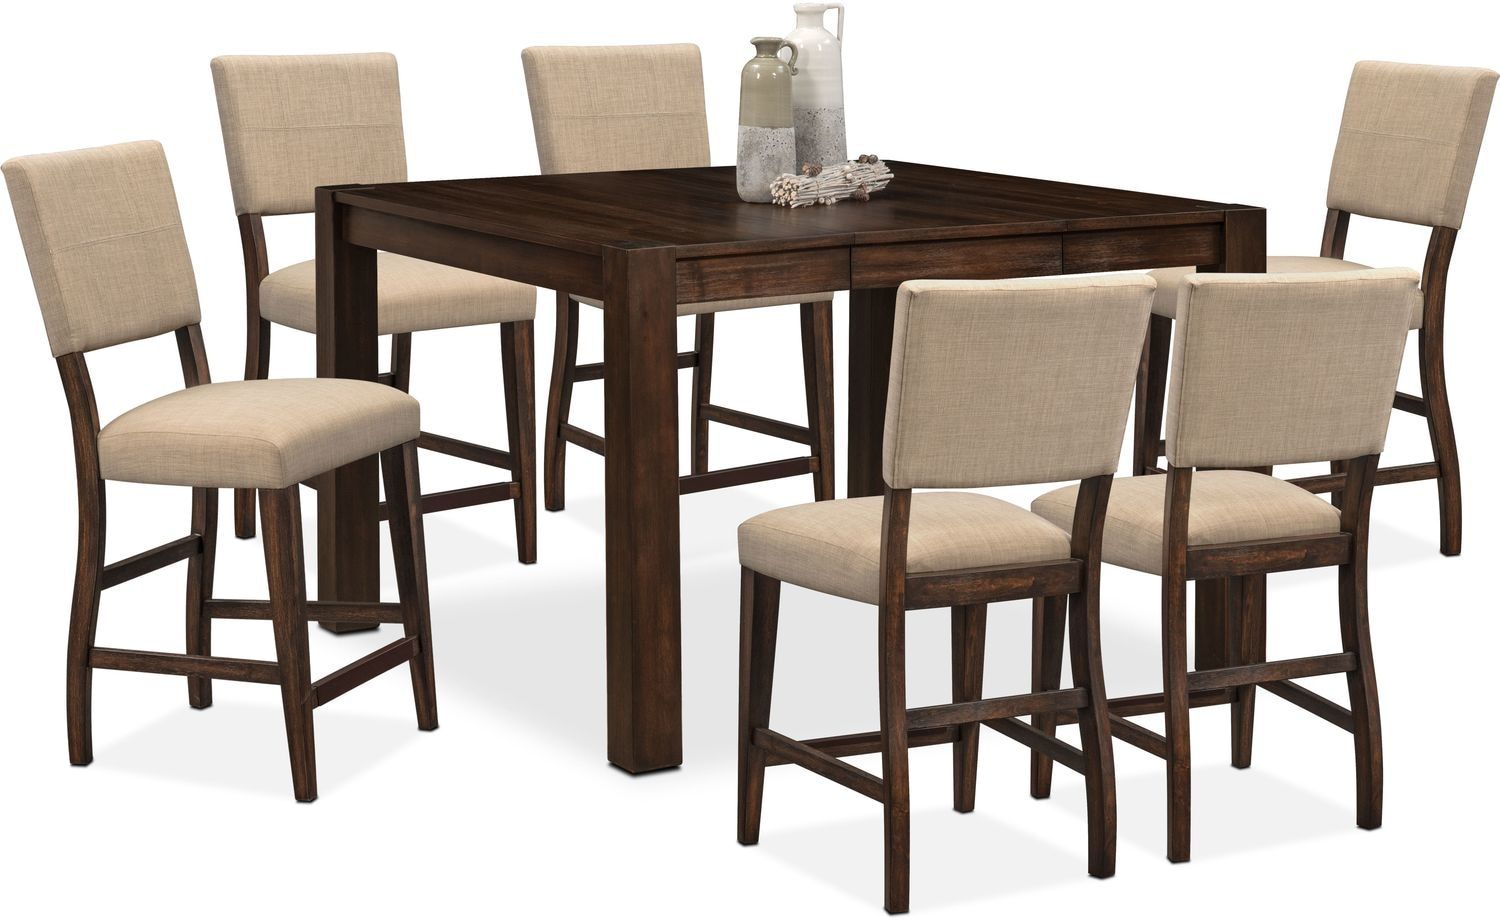 Tribeca CounterHeight Dining Table and 6 Upholstered